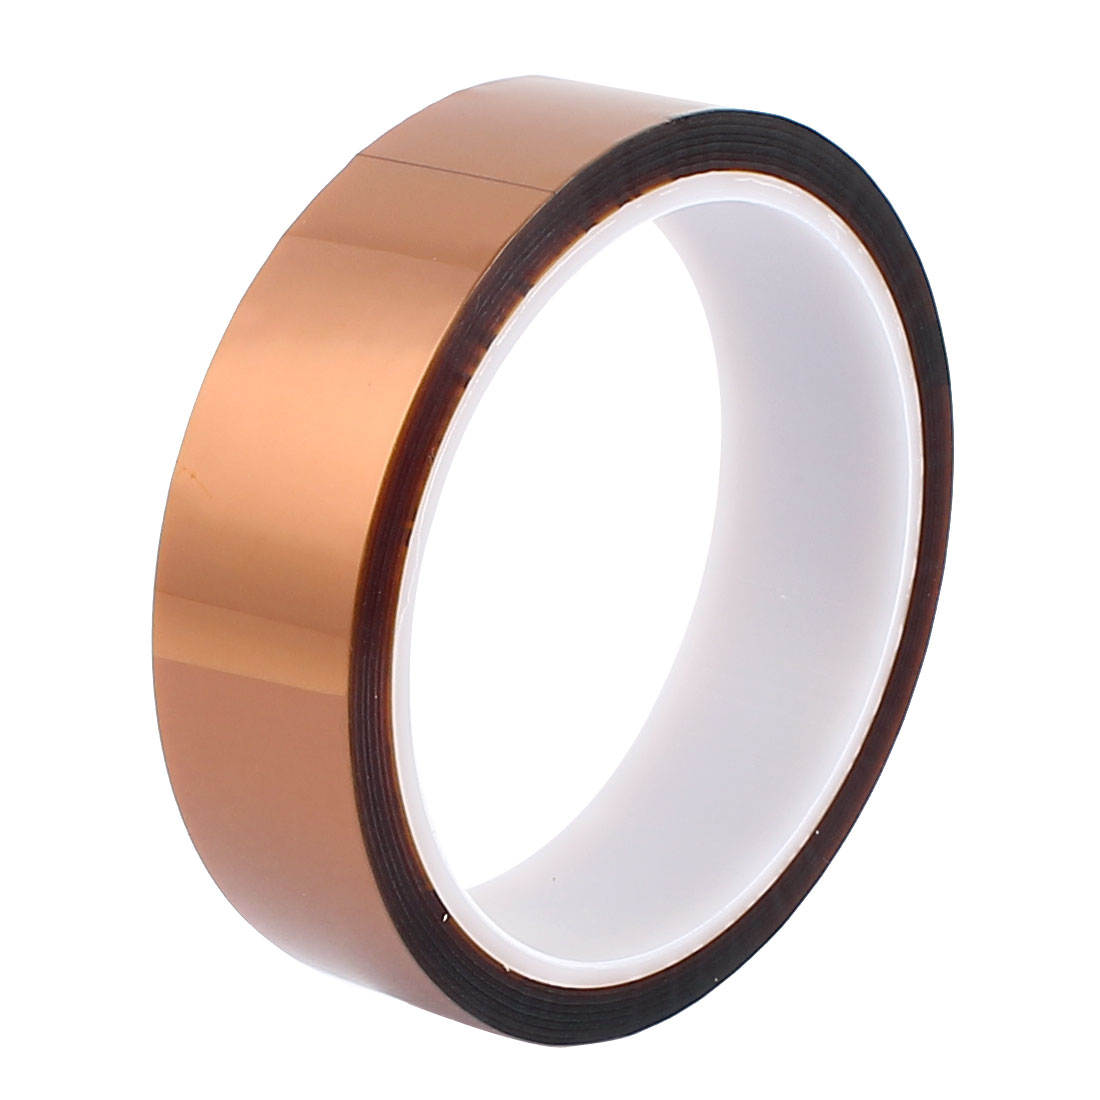 2.5CM Width 33M Long DIY Tape High Temperature Heat Resistant Polyimide